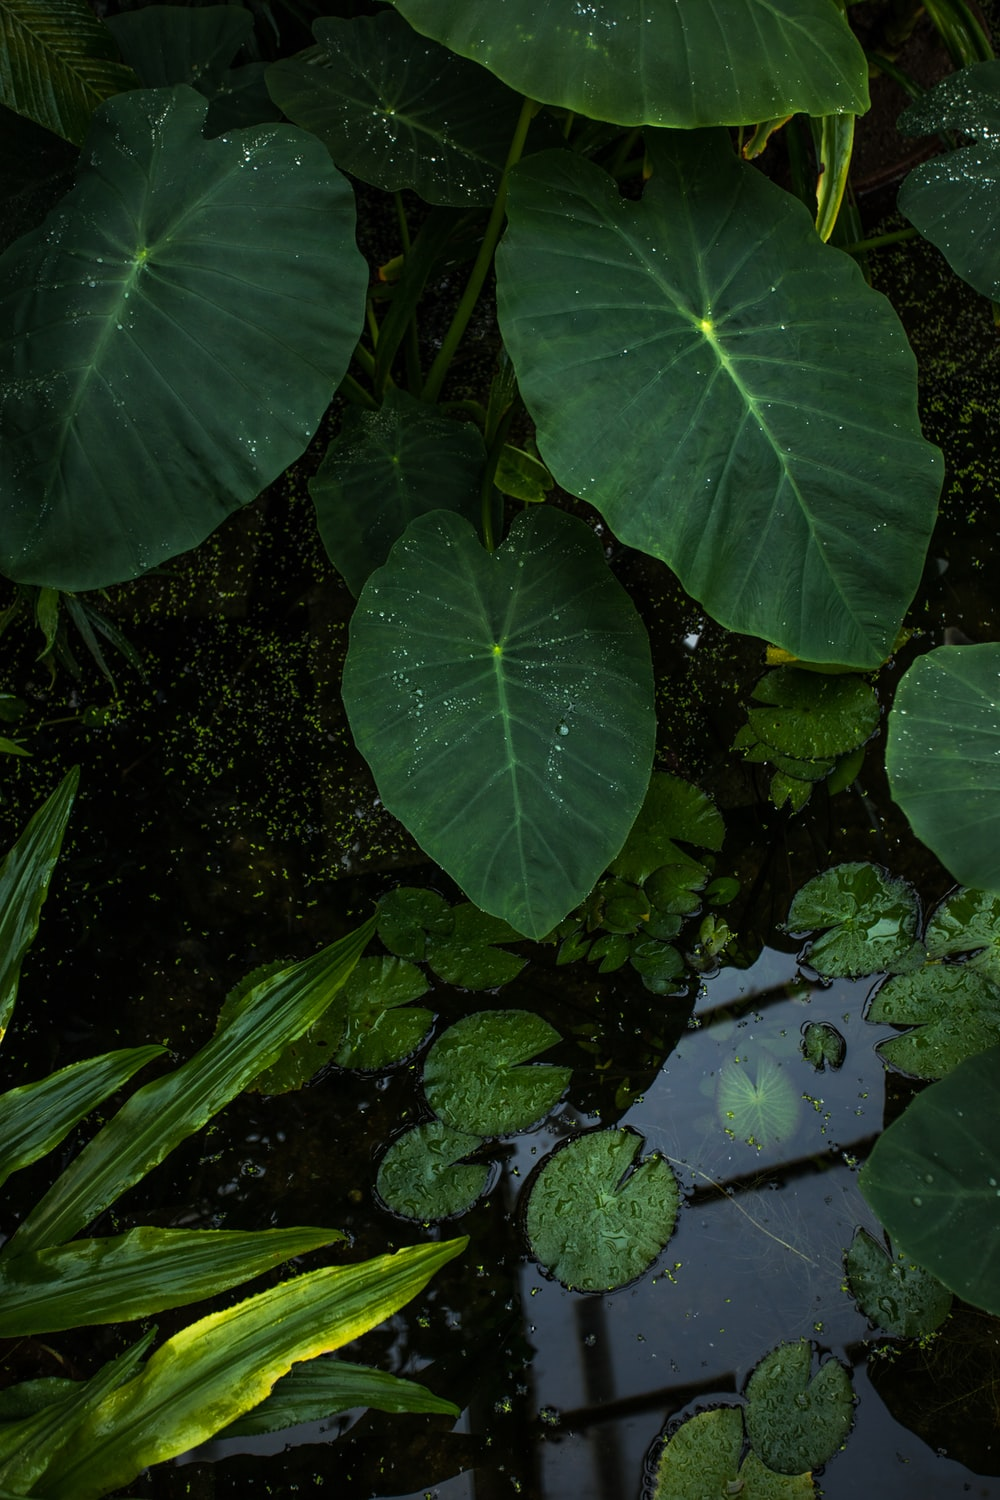 green-leafed plant near body of water